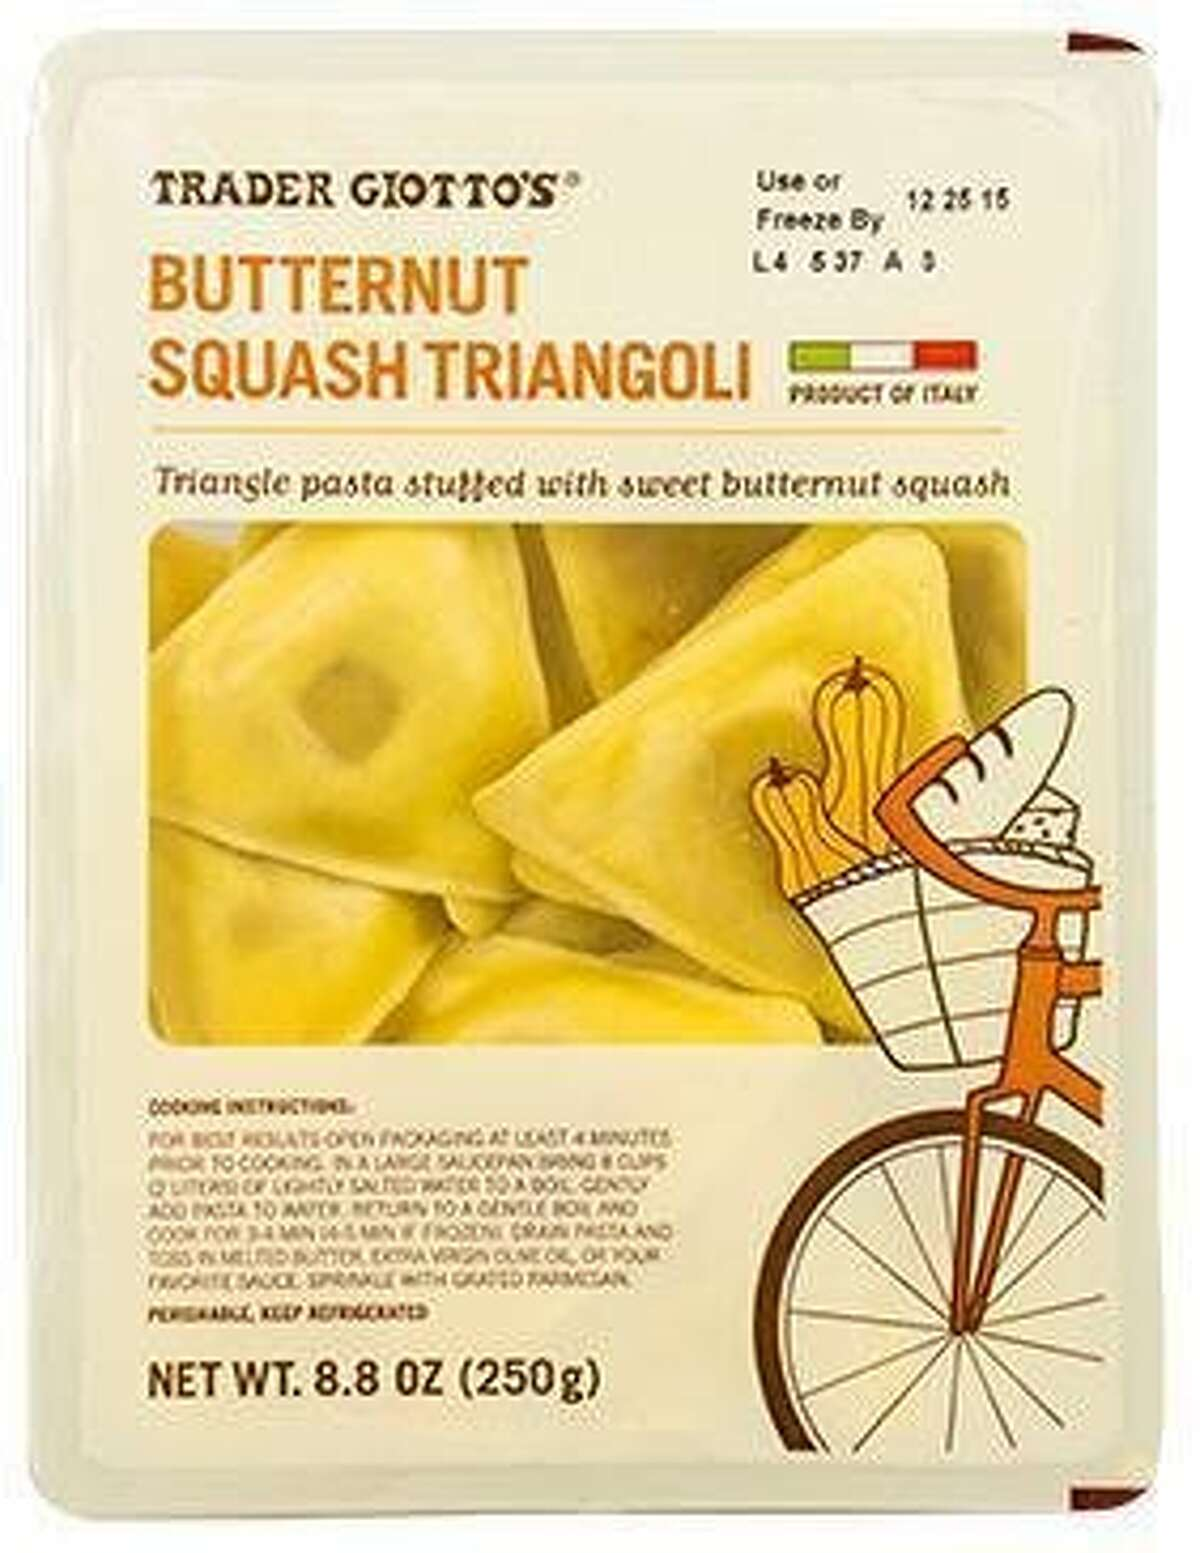 Trader Joe's is recalling its Trader Giotto's Butternut Squash Triangoli.